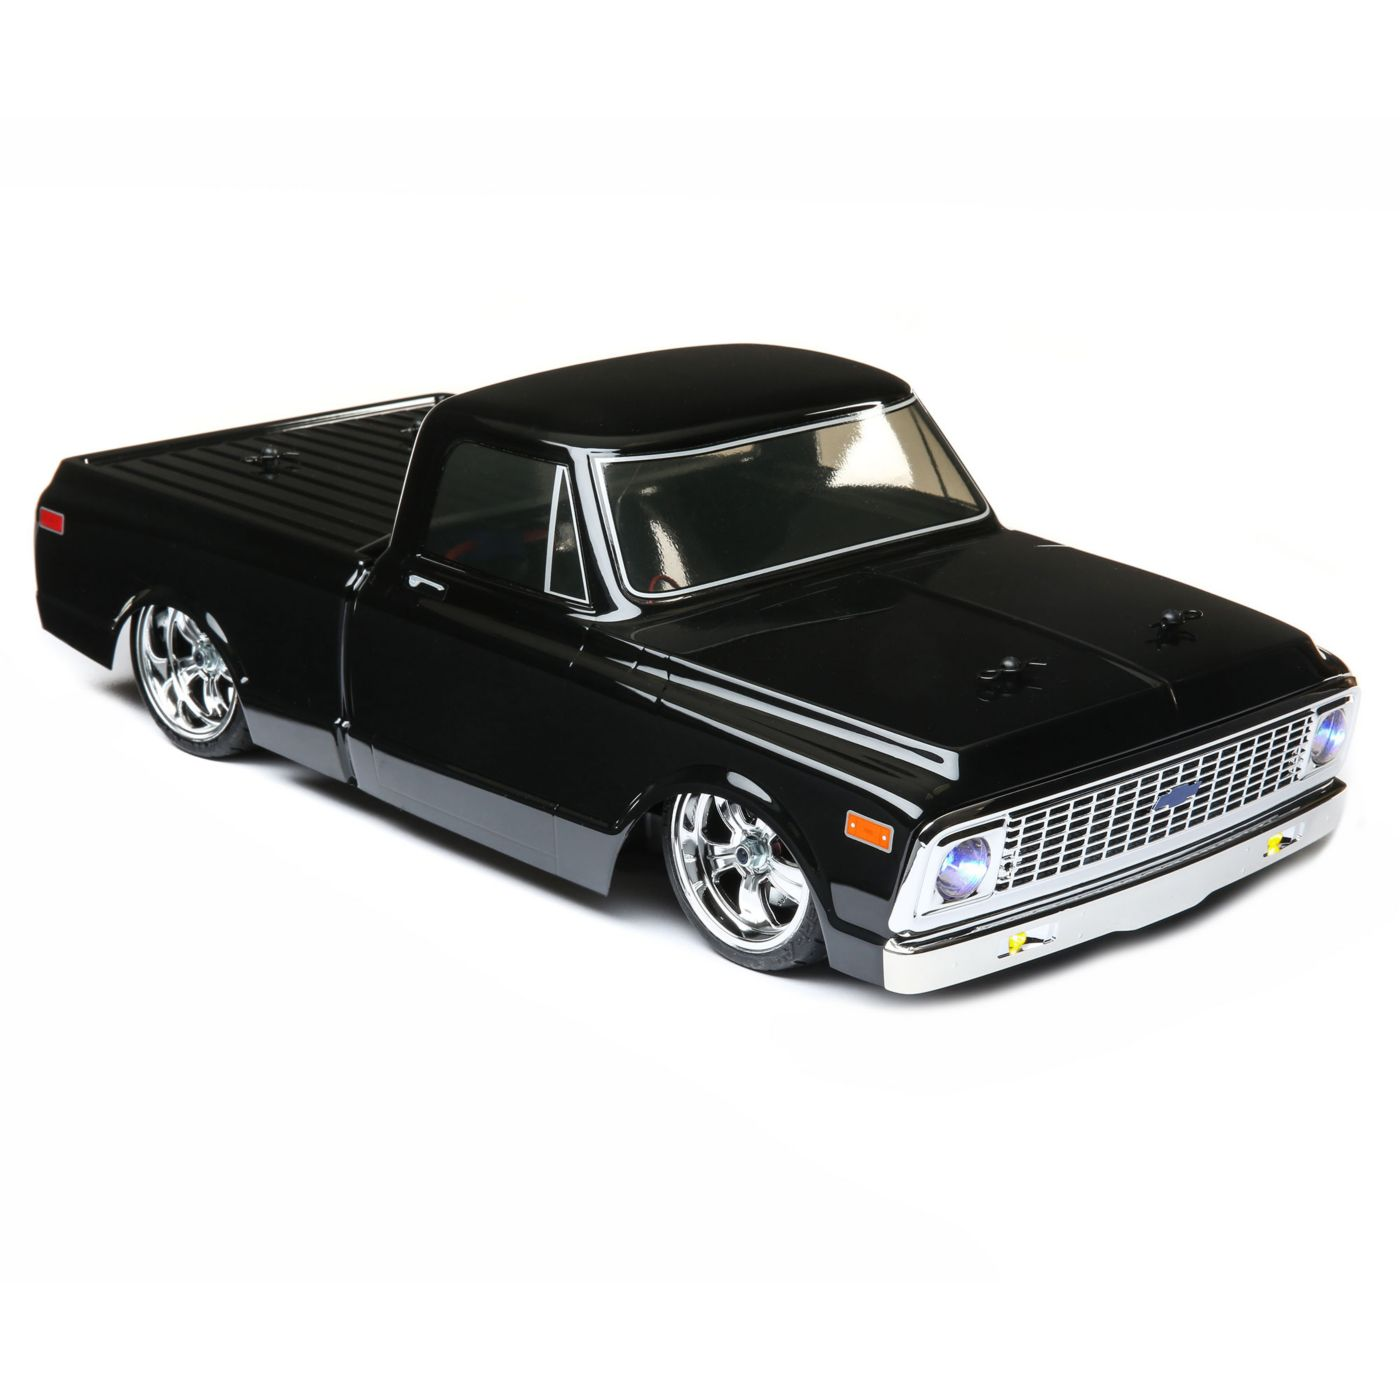 Vaterra 1/10 1972 Chevy C10 Pickup Truck V-100 S 4WD Brushed RTR